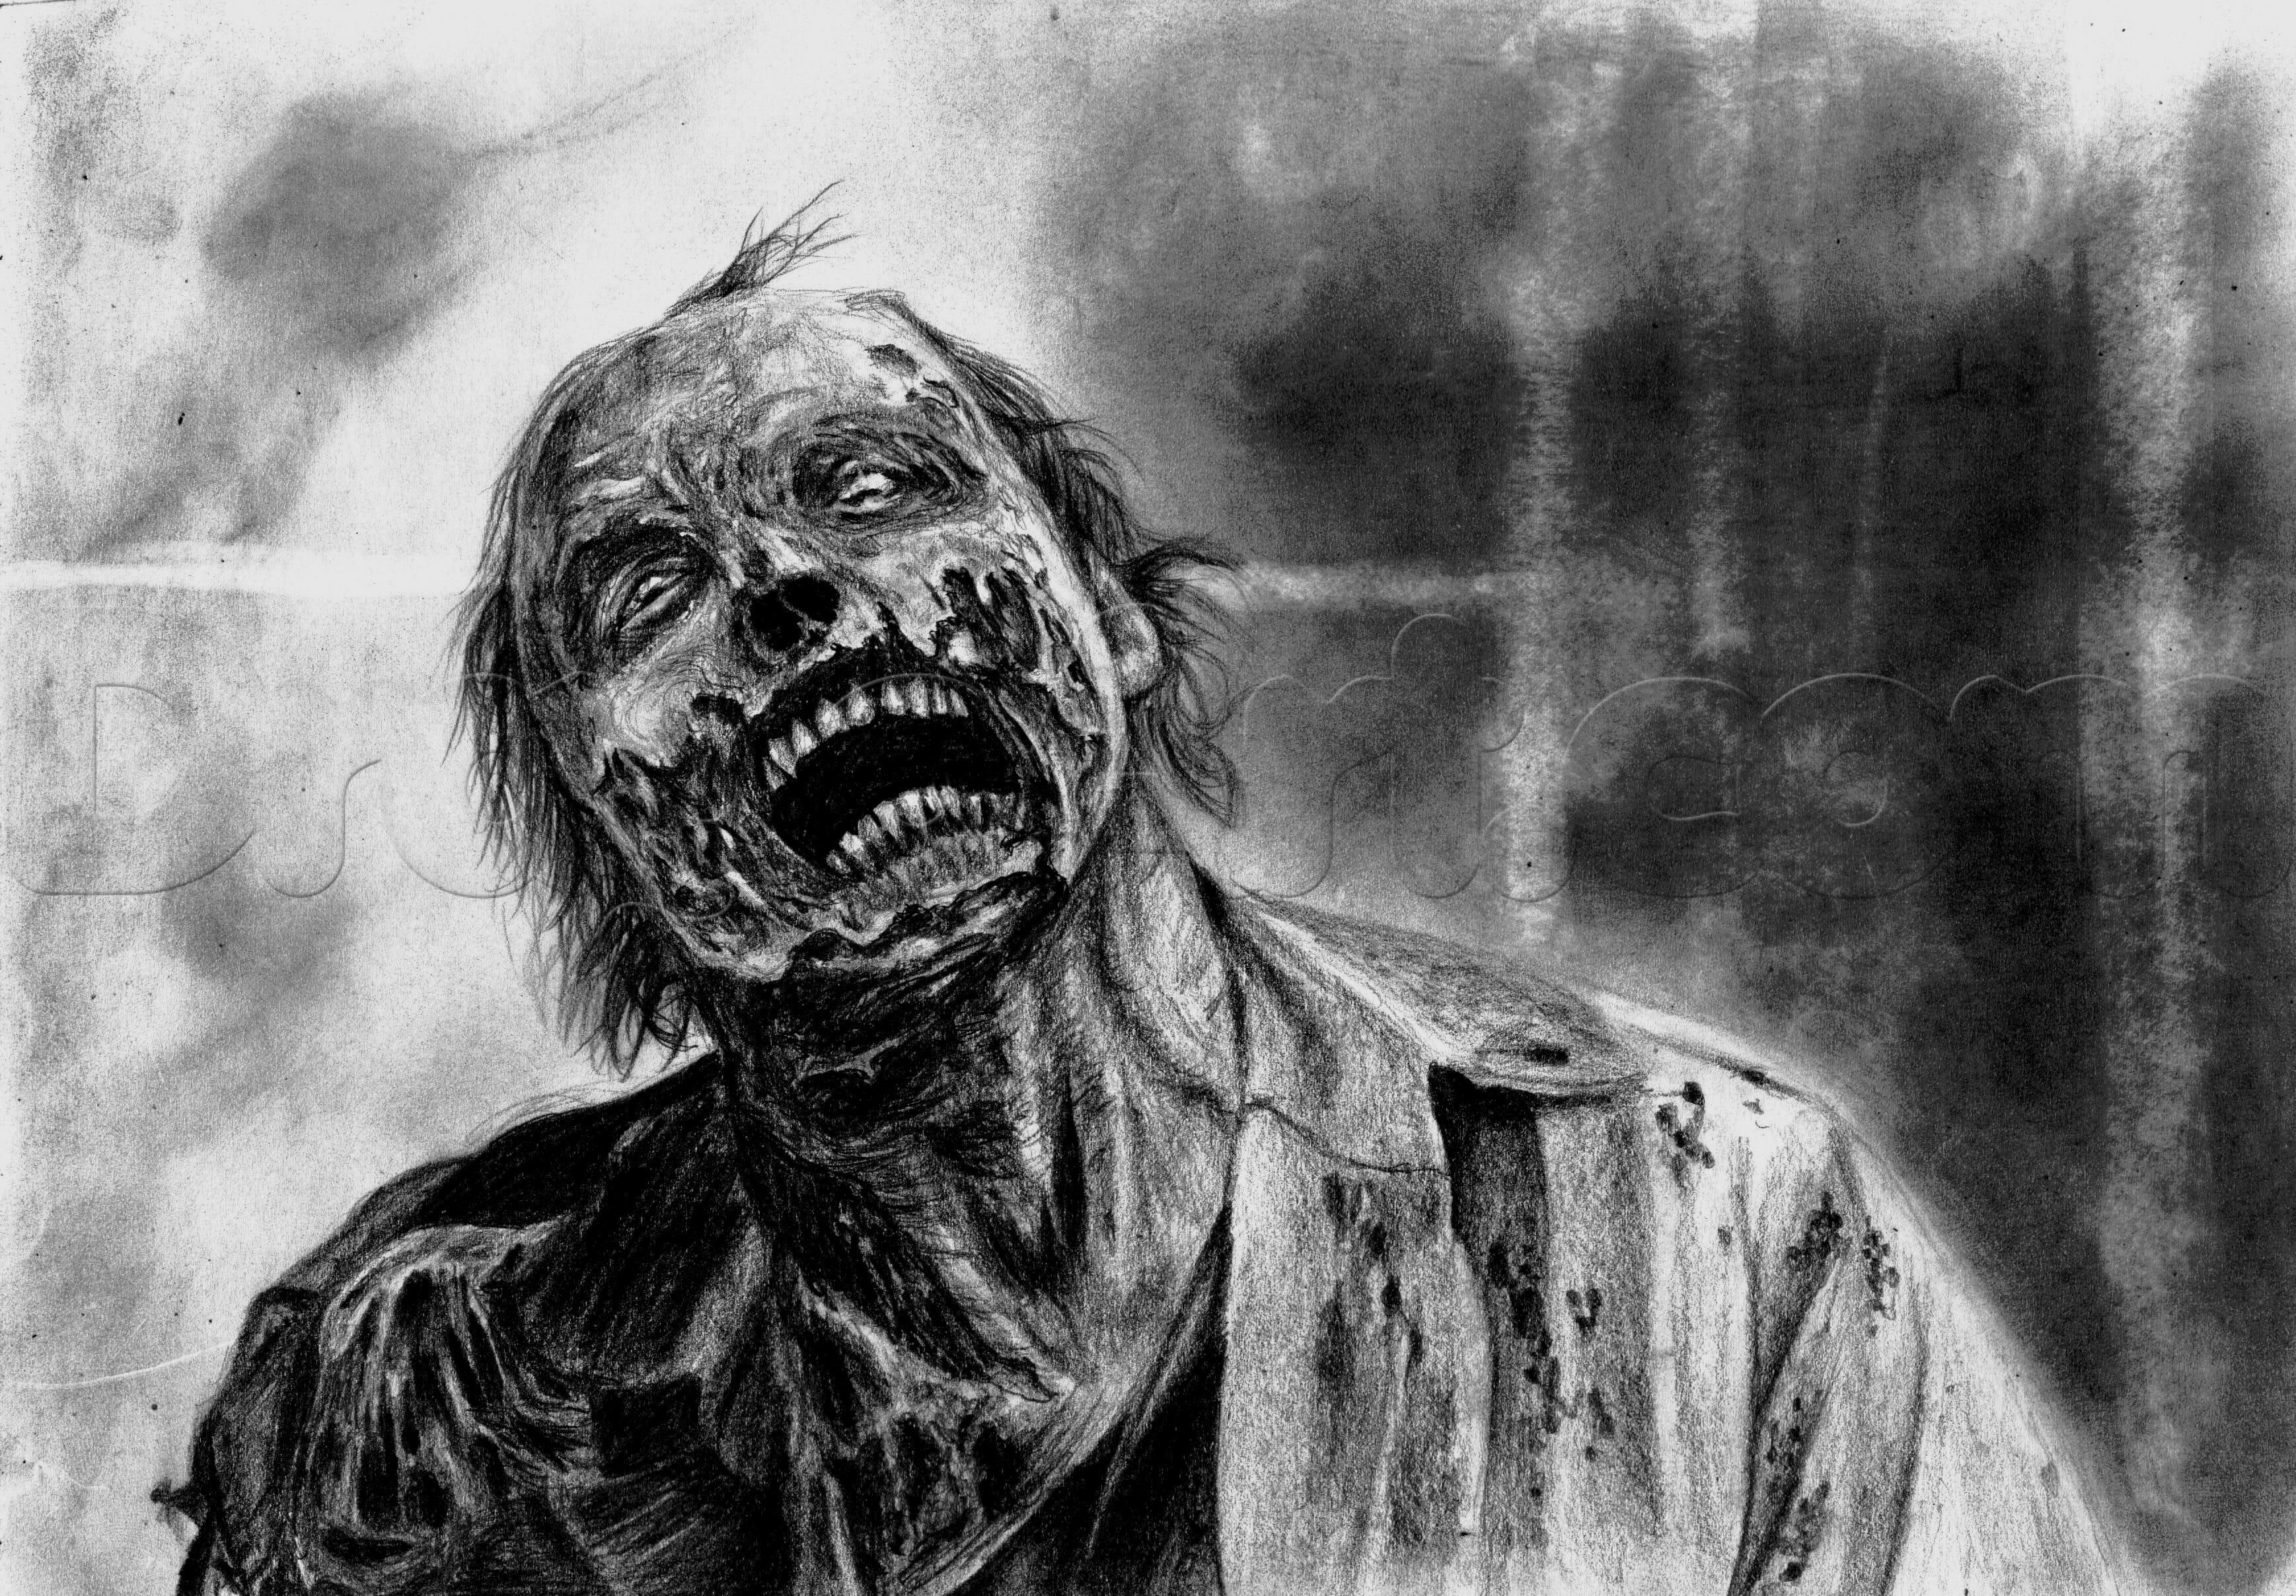 How to draw a realistic zombie zombie drawings drawings